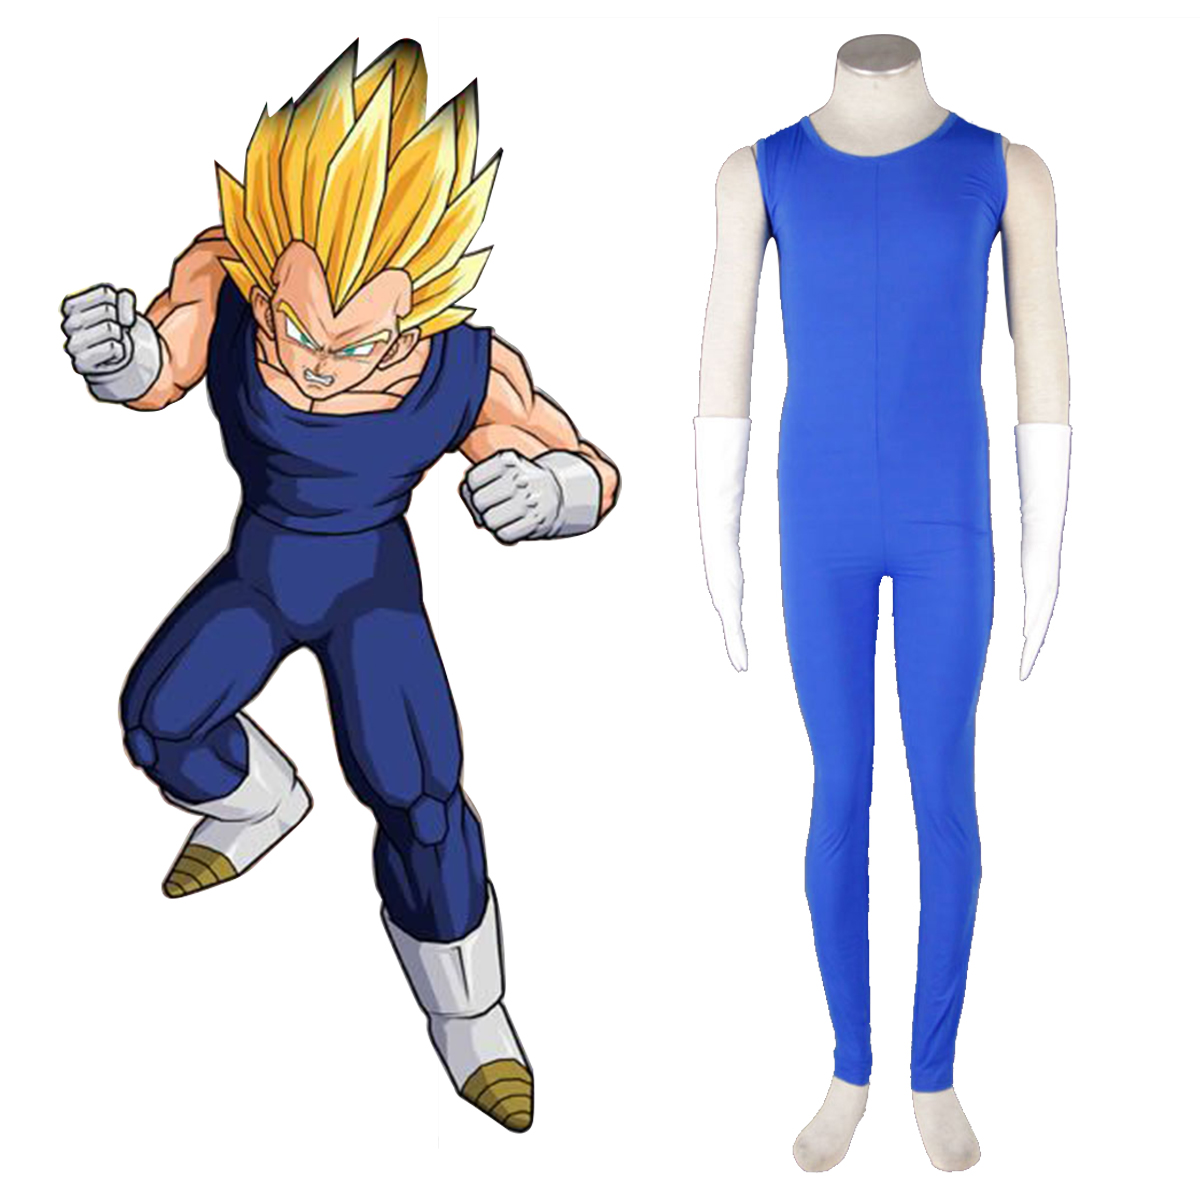 Dragon Ball Vegeta 2 Cosplay Kostym Sverige